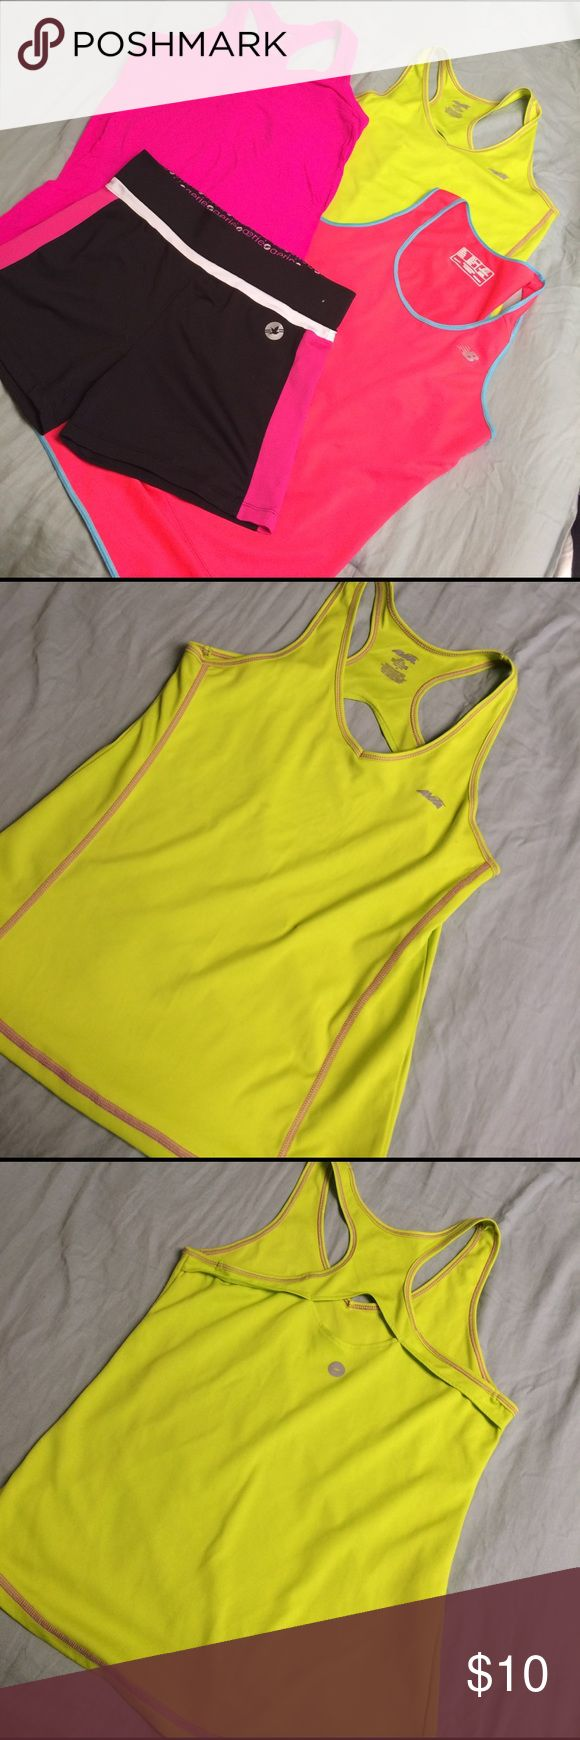 Workout bundle Workout bundle. Used condition. Neon coral new balance is a small- great condition. Aerie spandex shorts are great used condition with a small paint spot at the band (pictured), medium. Avia neon yellow top with neat back, medium and used condition. Neon pink Jockey top was worn under a black fleece and has fleece on it. Washed but they clung on there. Used condition, medium. Tops